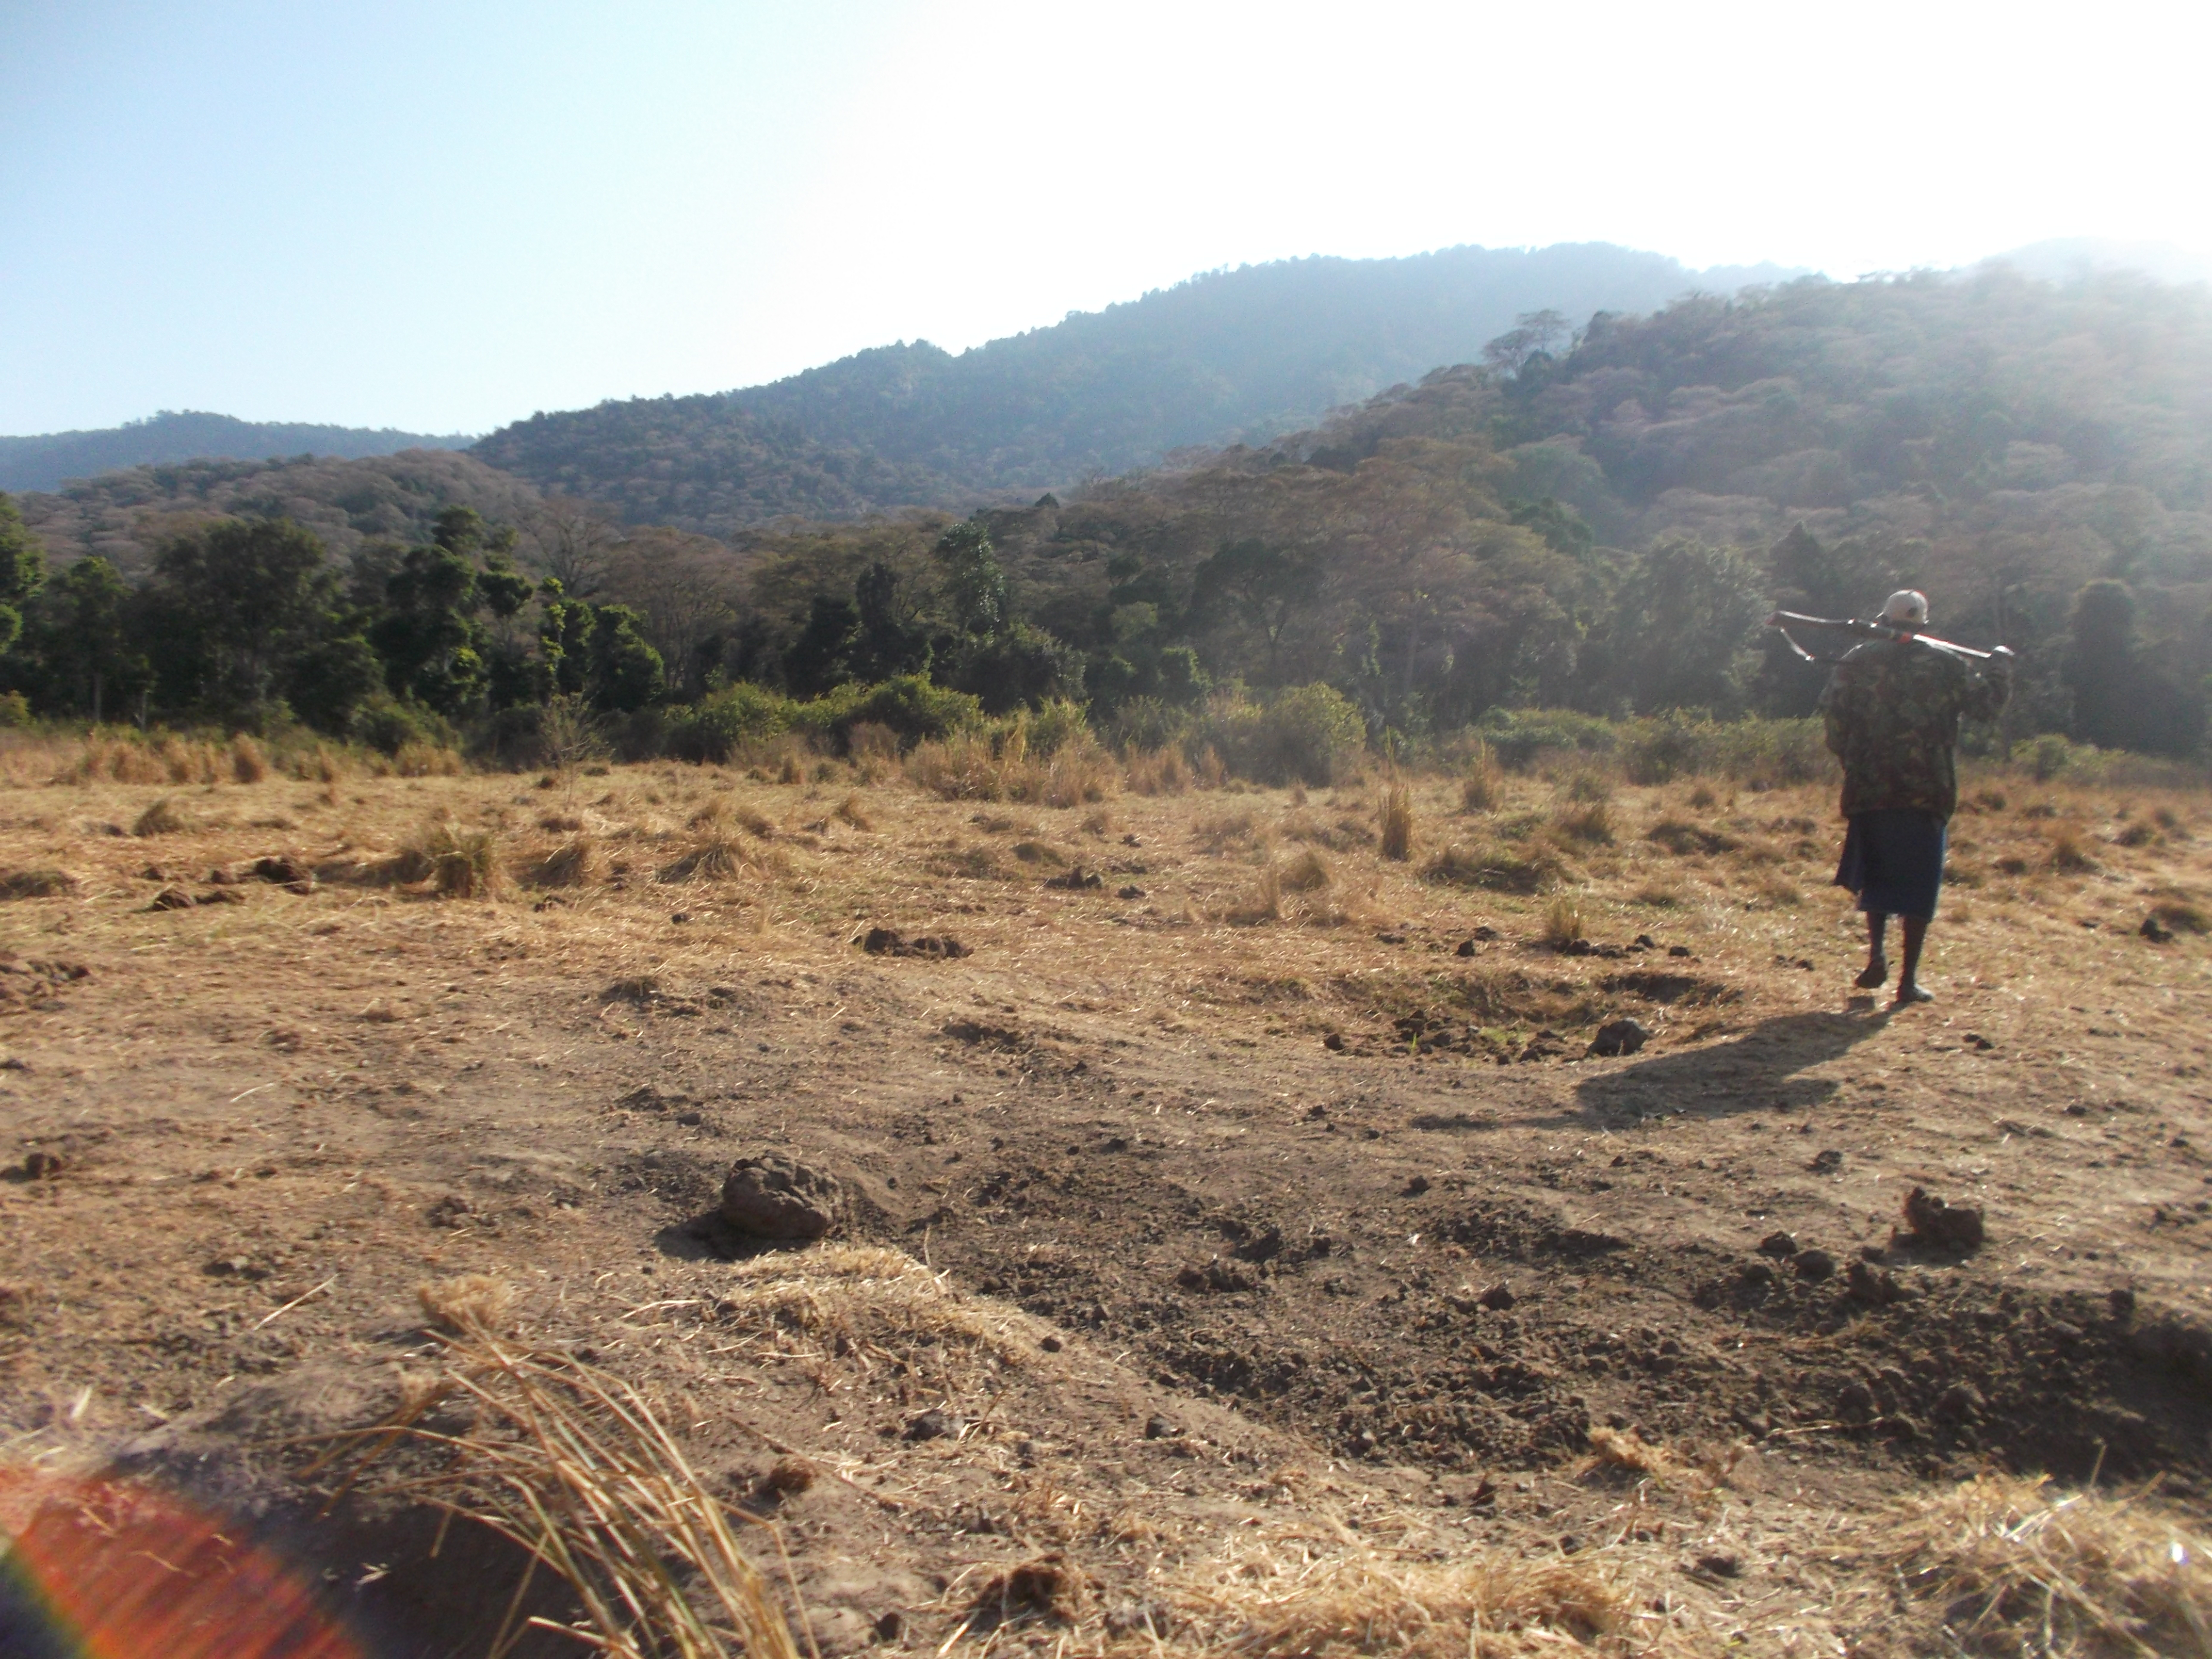 On Mathews Range between dry lower slope and the high forest- copyright rupi mangat